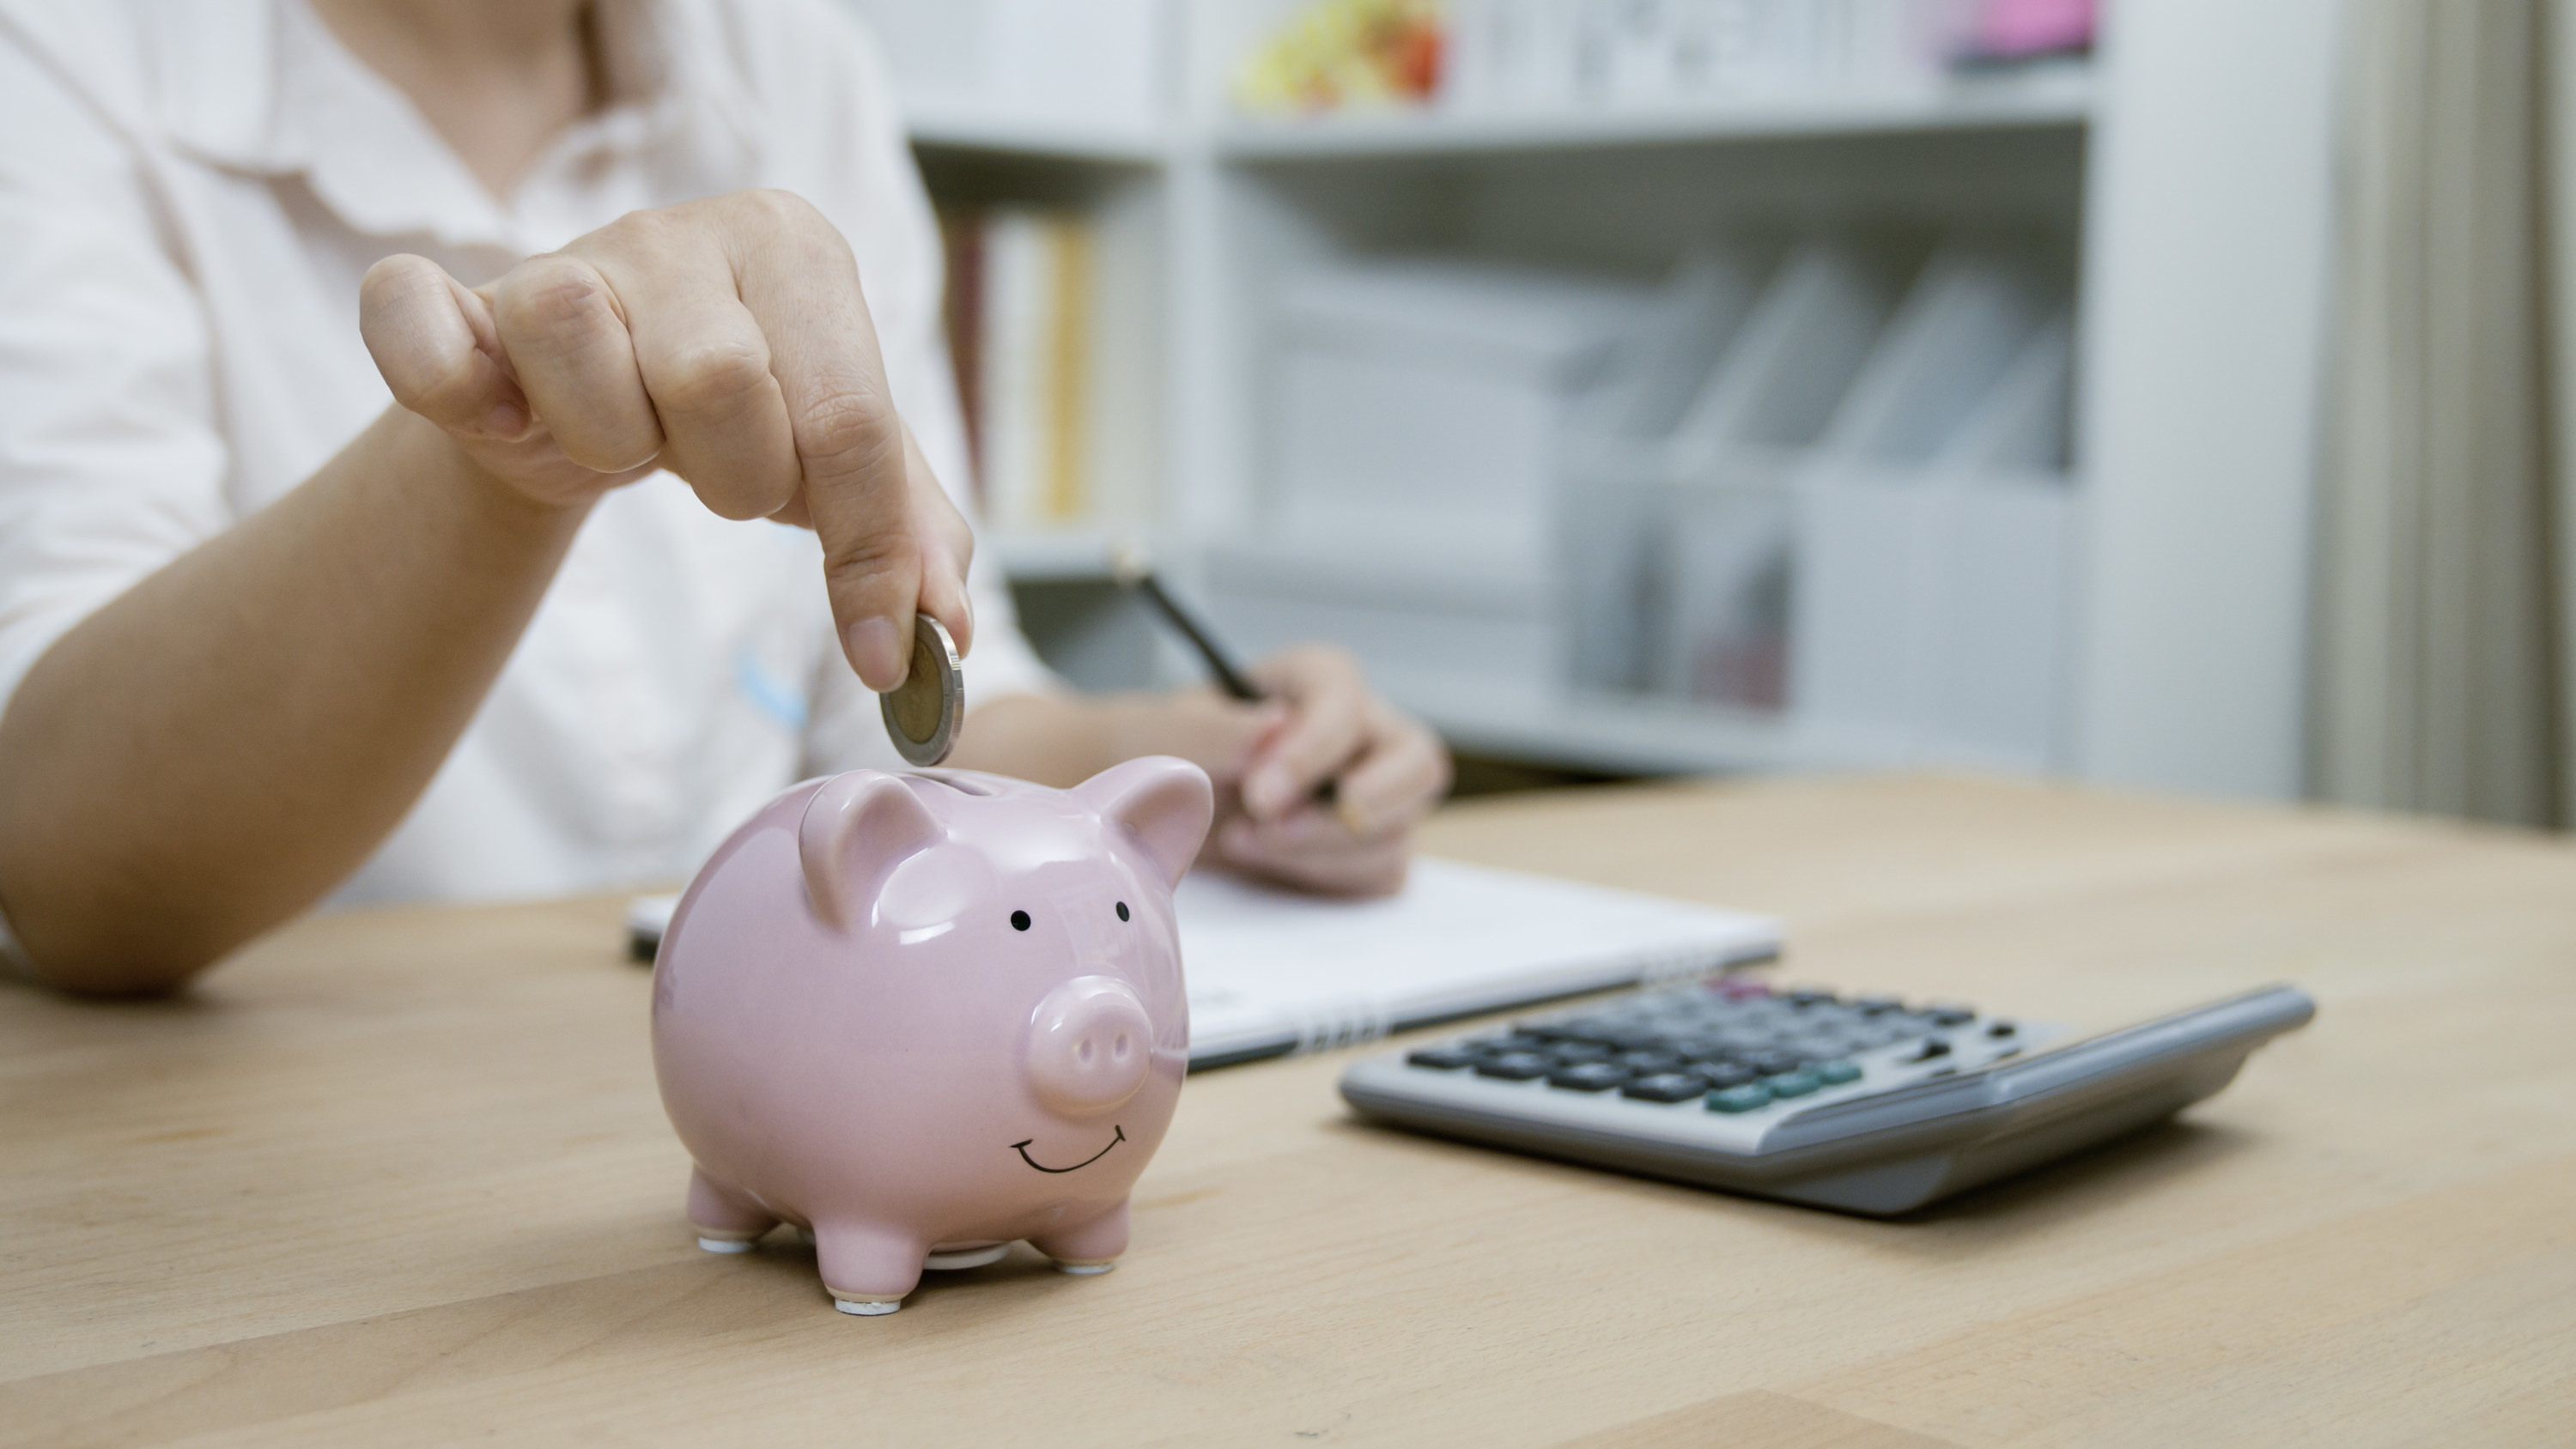 Person putting a coin in a piggy bank